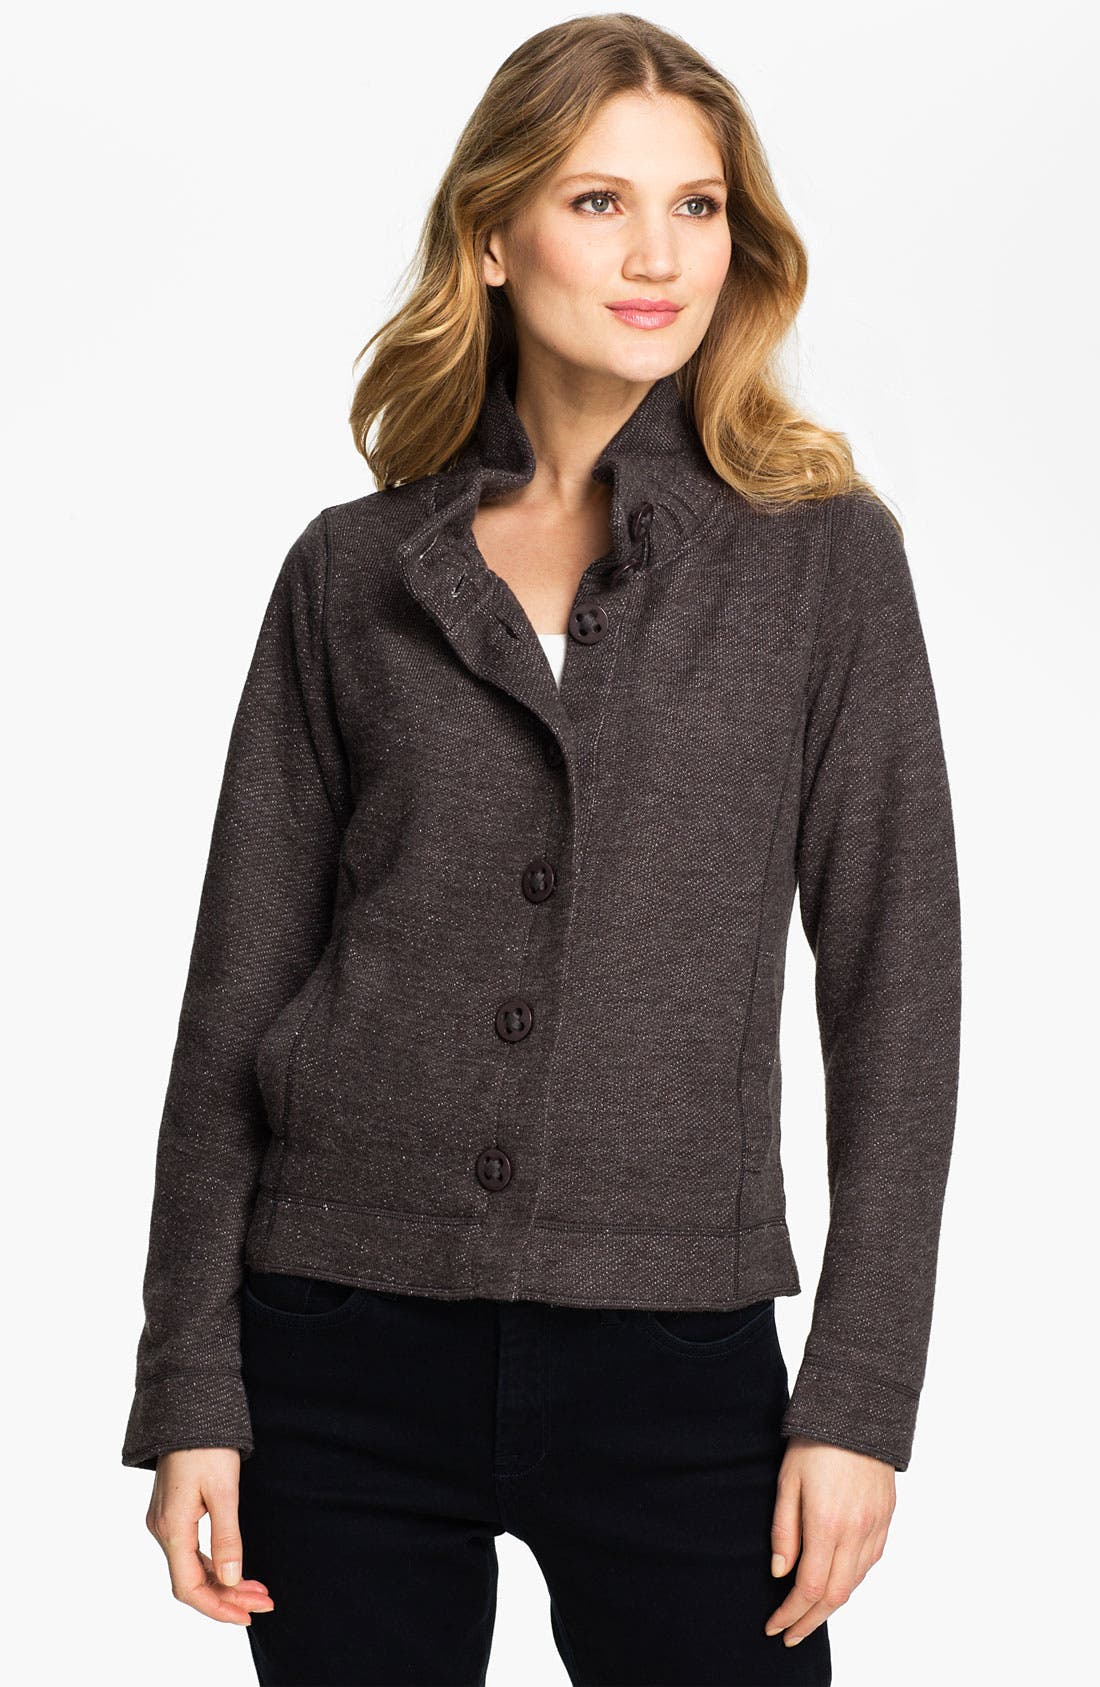 Alternate Image 1 Selected - Purity Stand Collar Spa Jacket